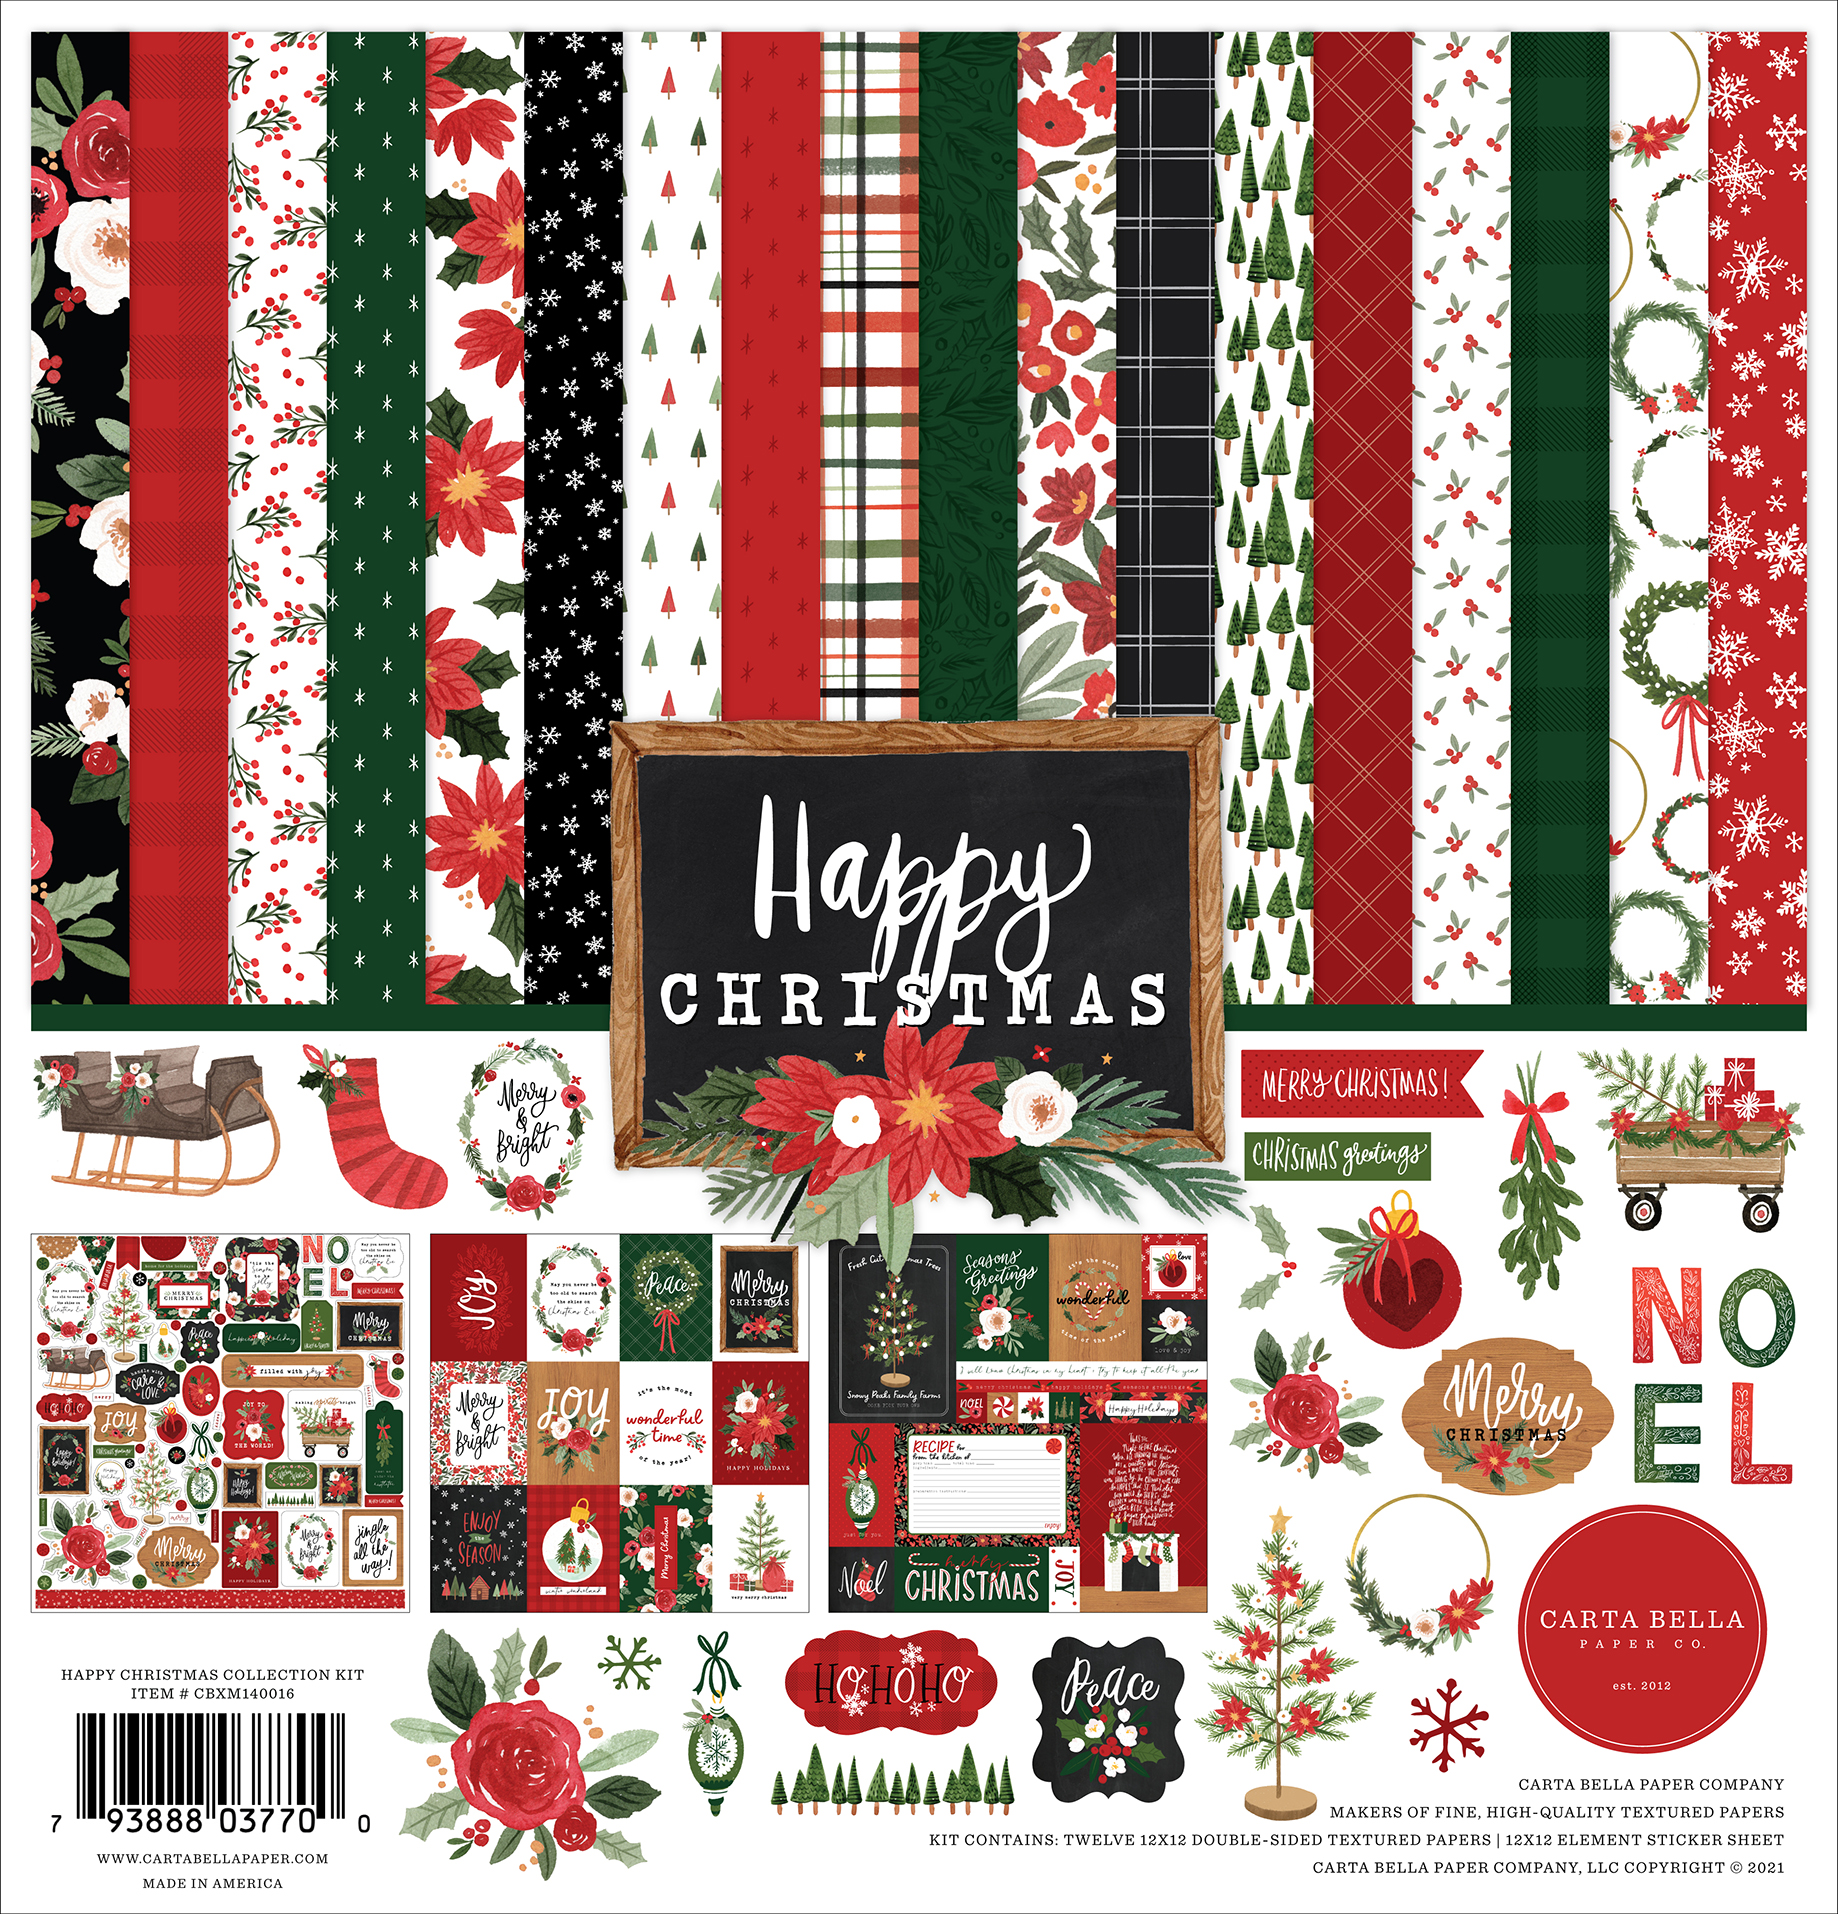 Happy Christmas Collection Kit